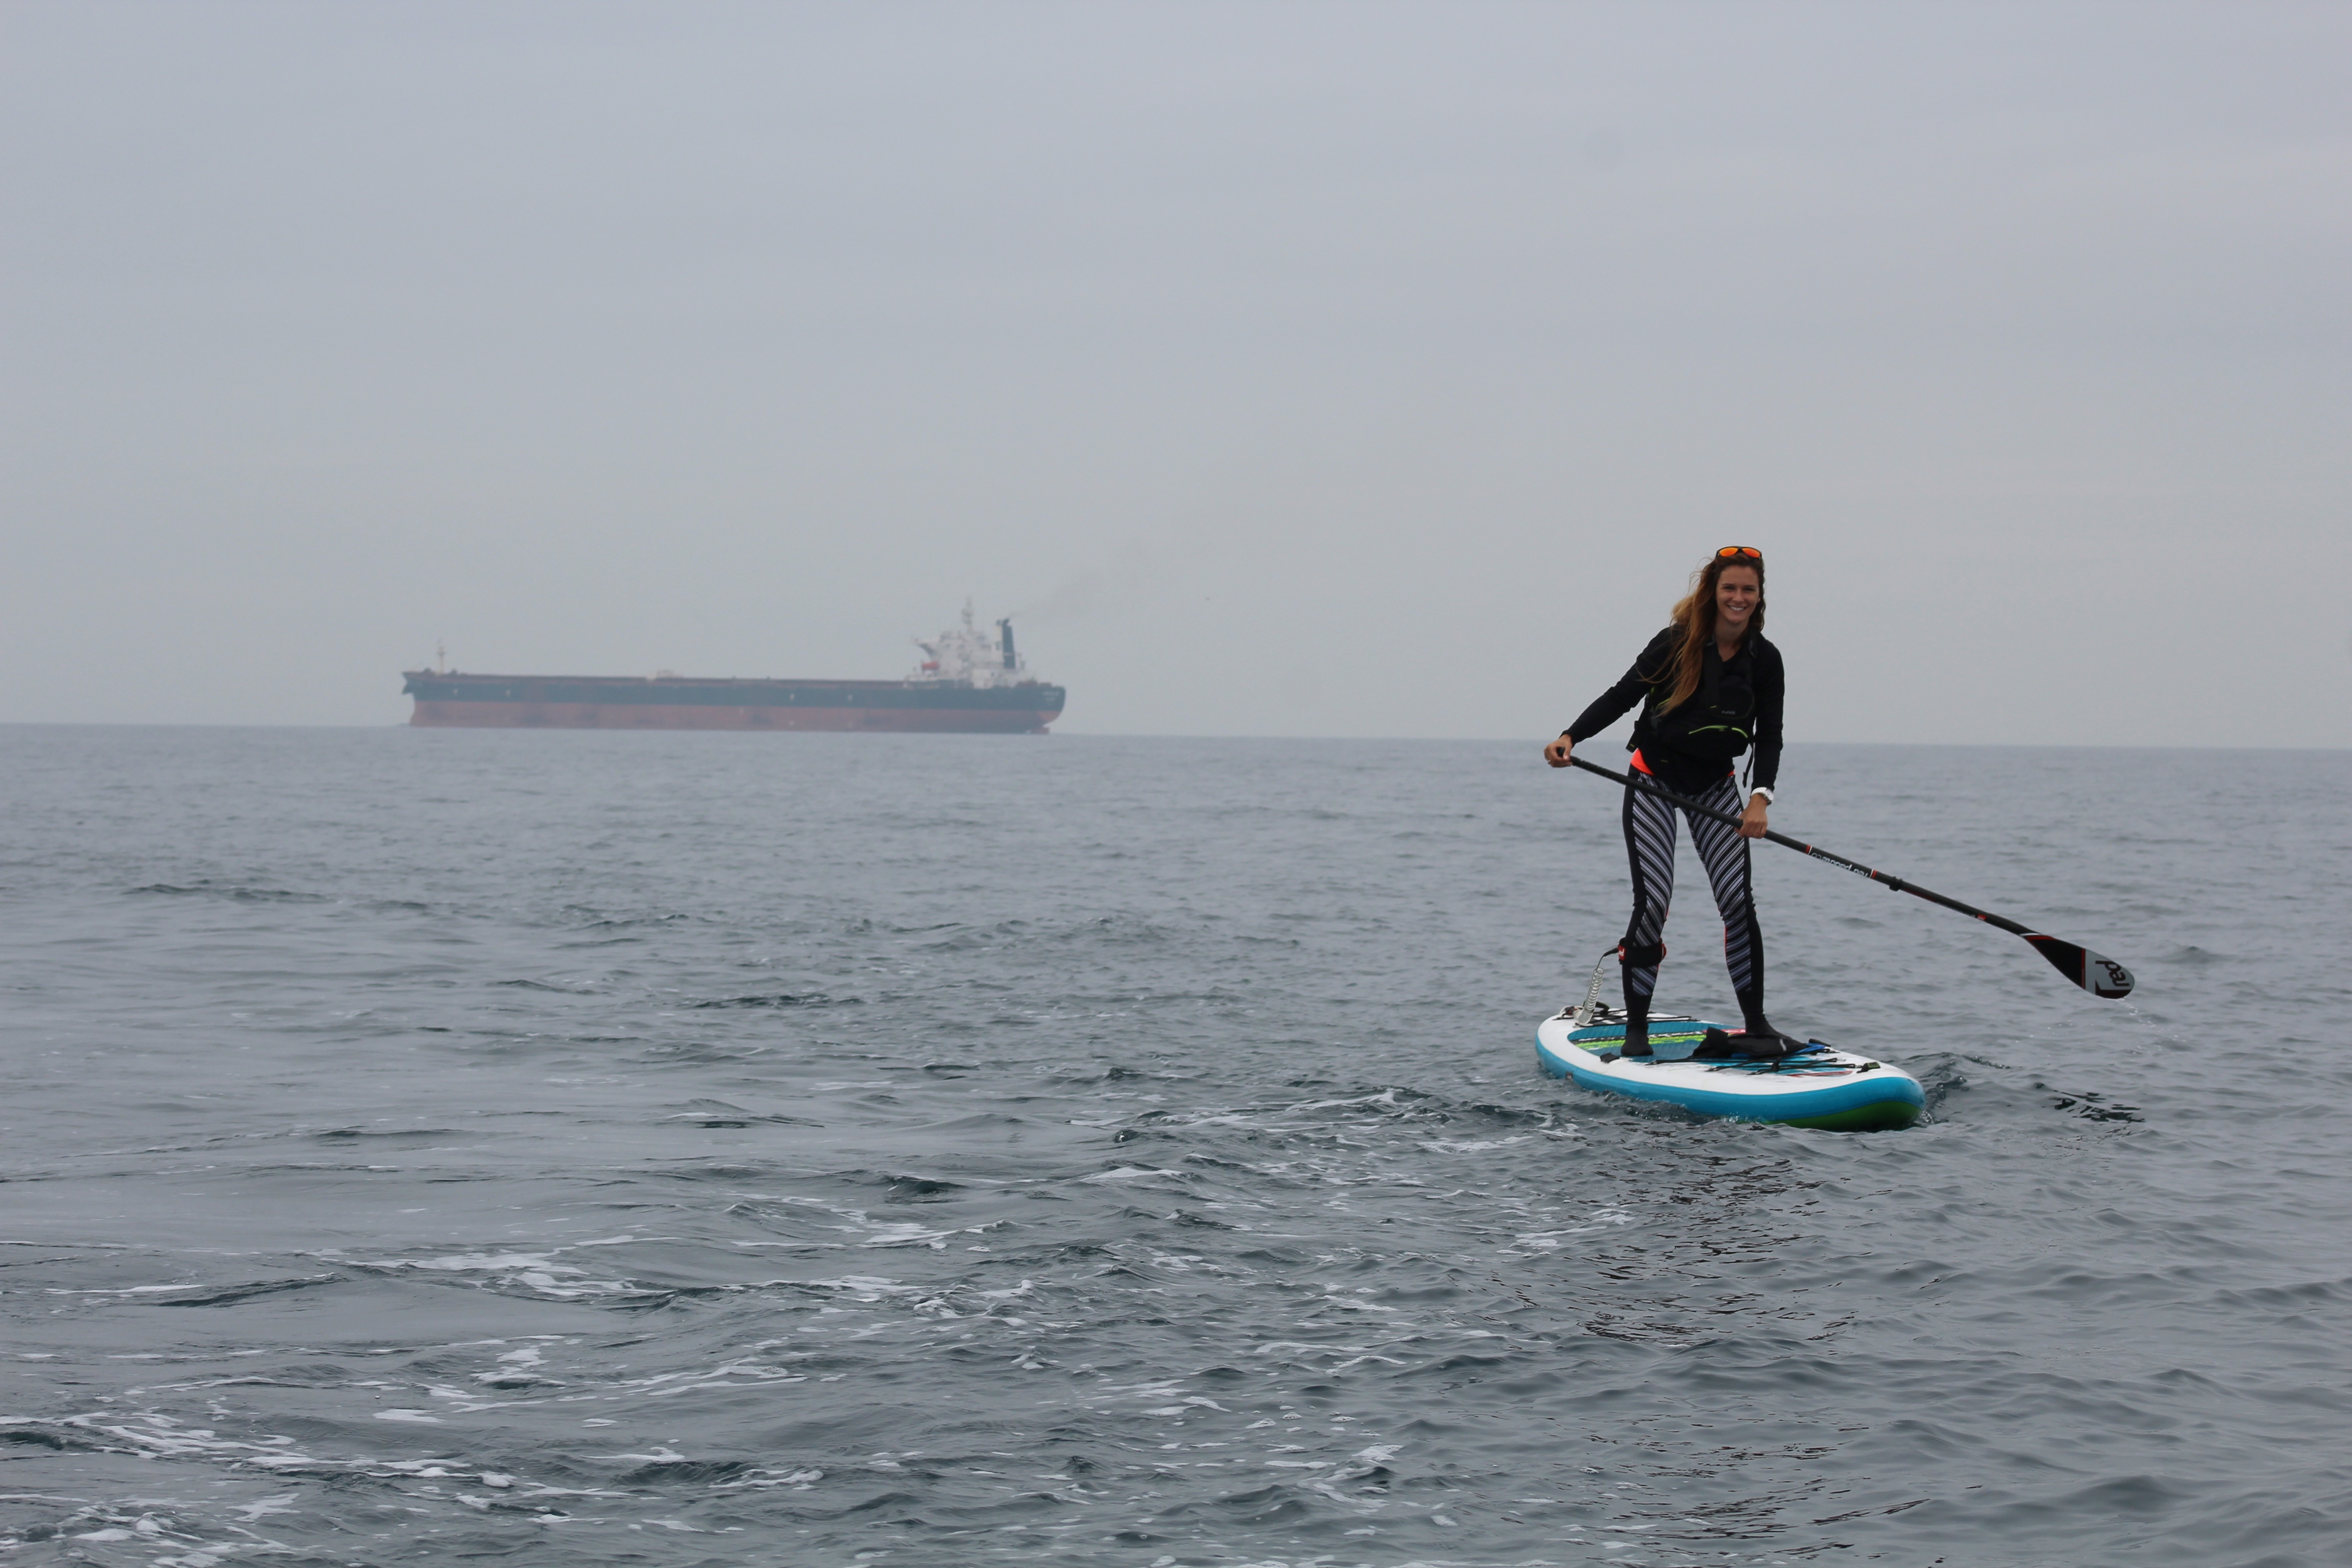 Lizzie paddling on her Red Paddle stand up paddle board, a tanker in the background